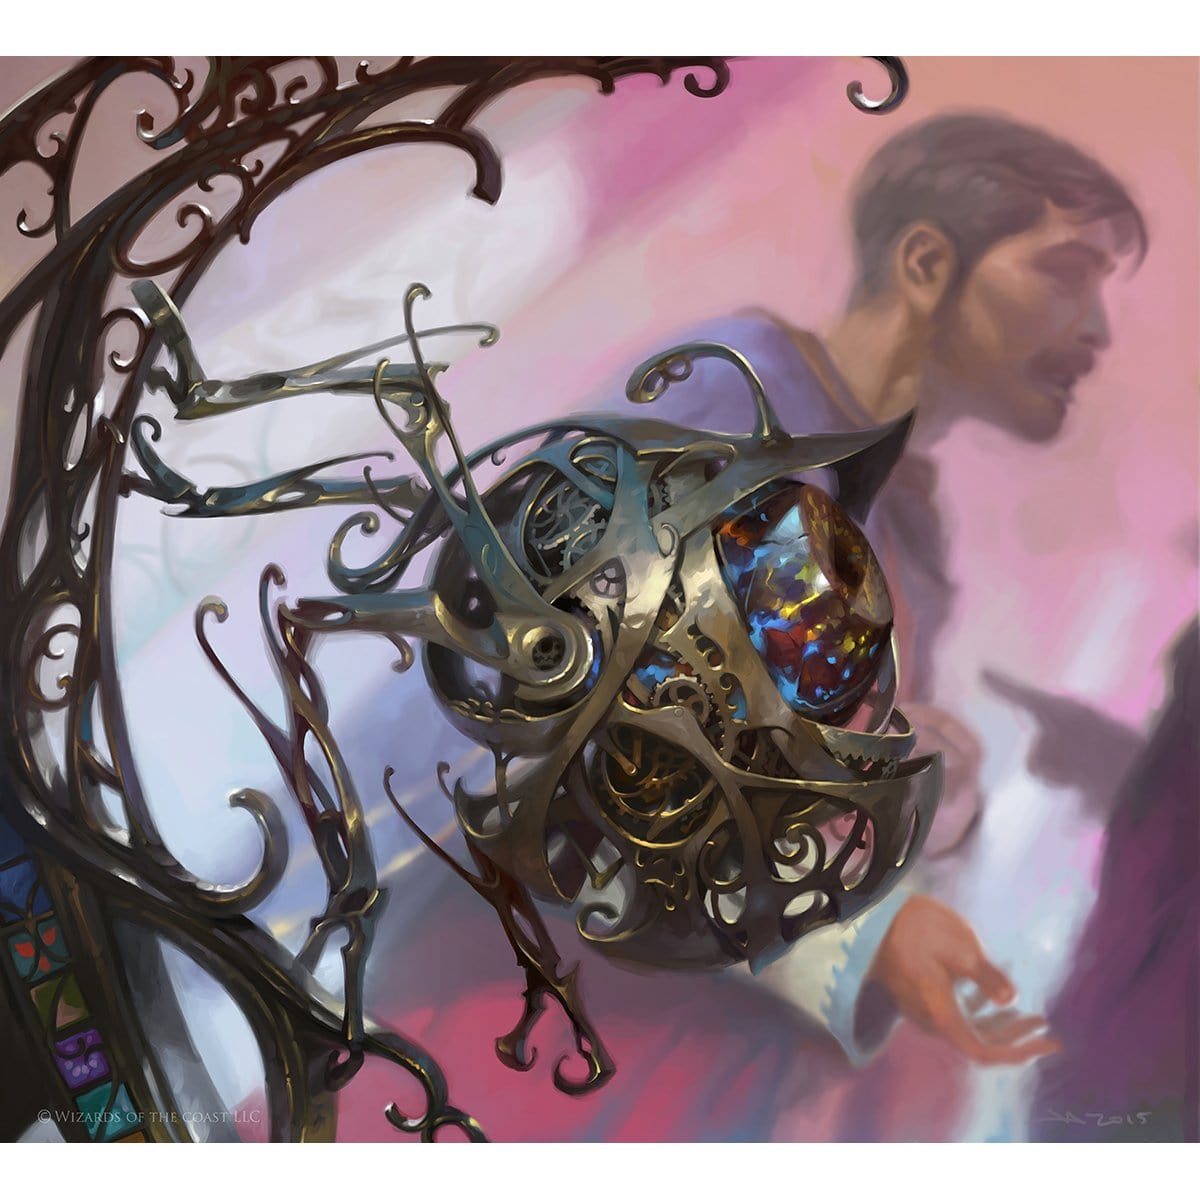 Servo Token Print - Print - Original Magic Art - Accessories for Magic the Gathering and other card games